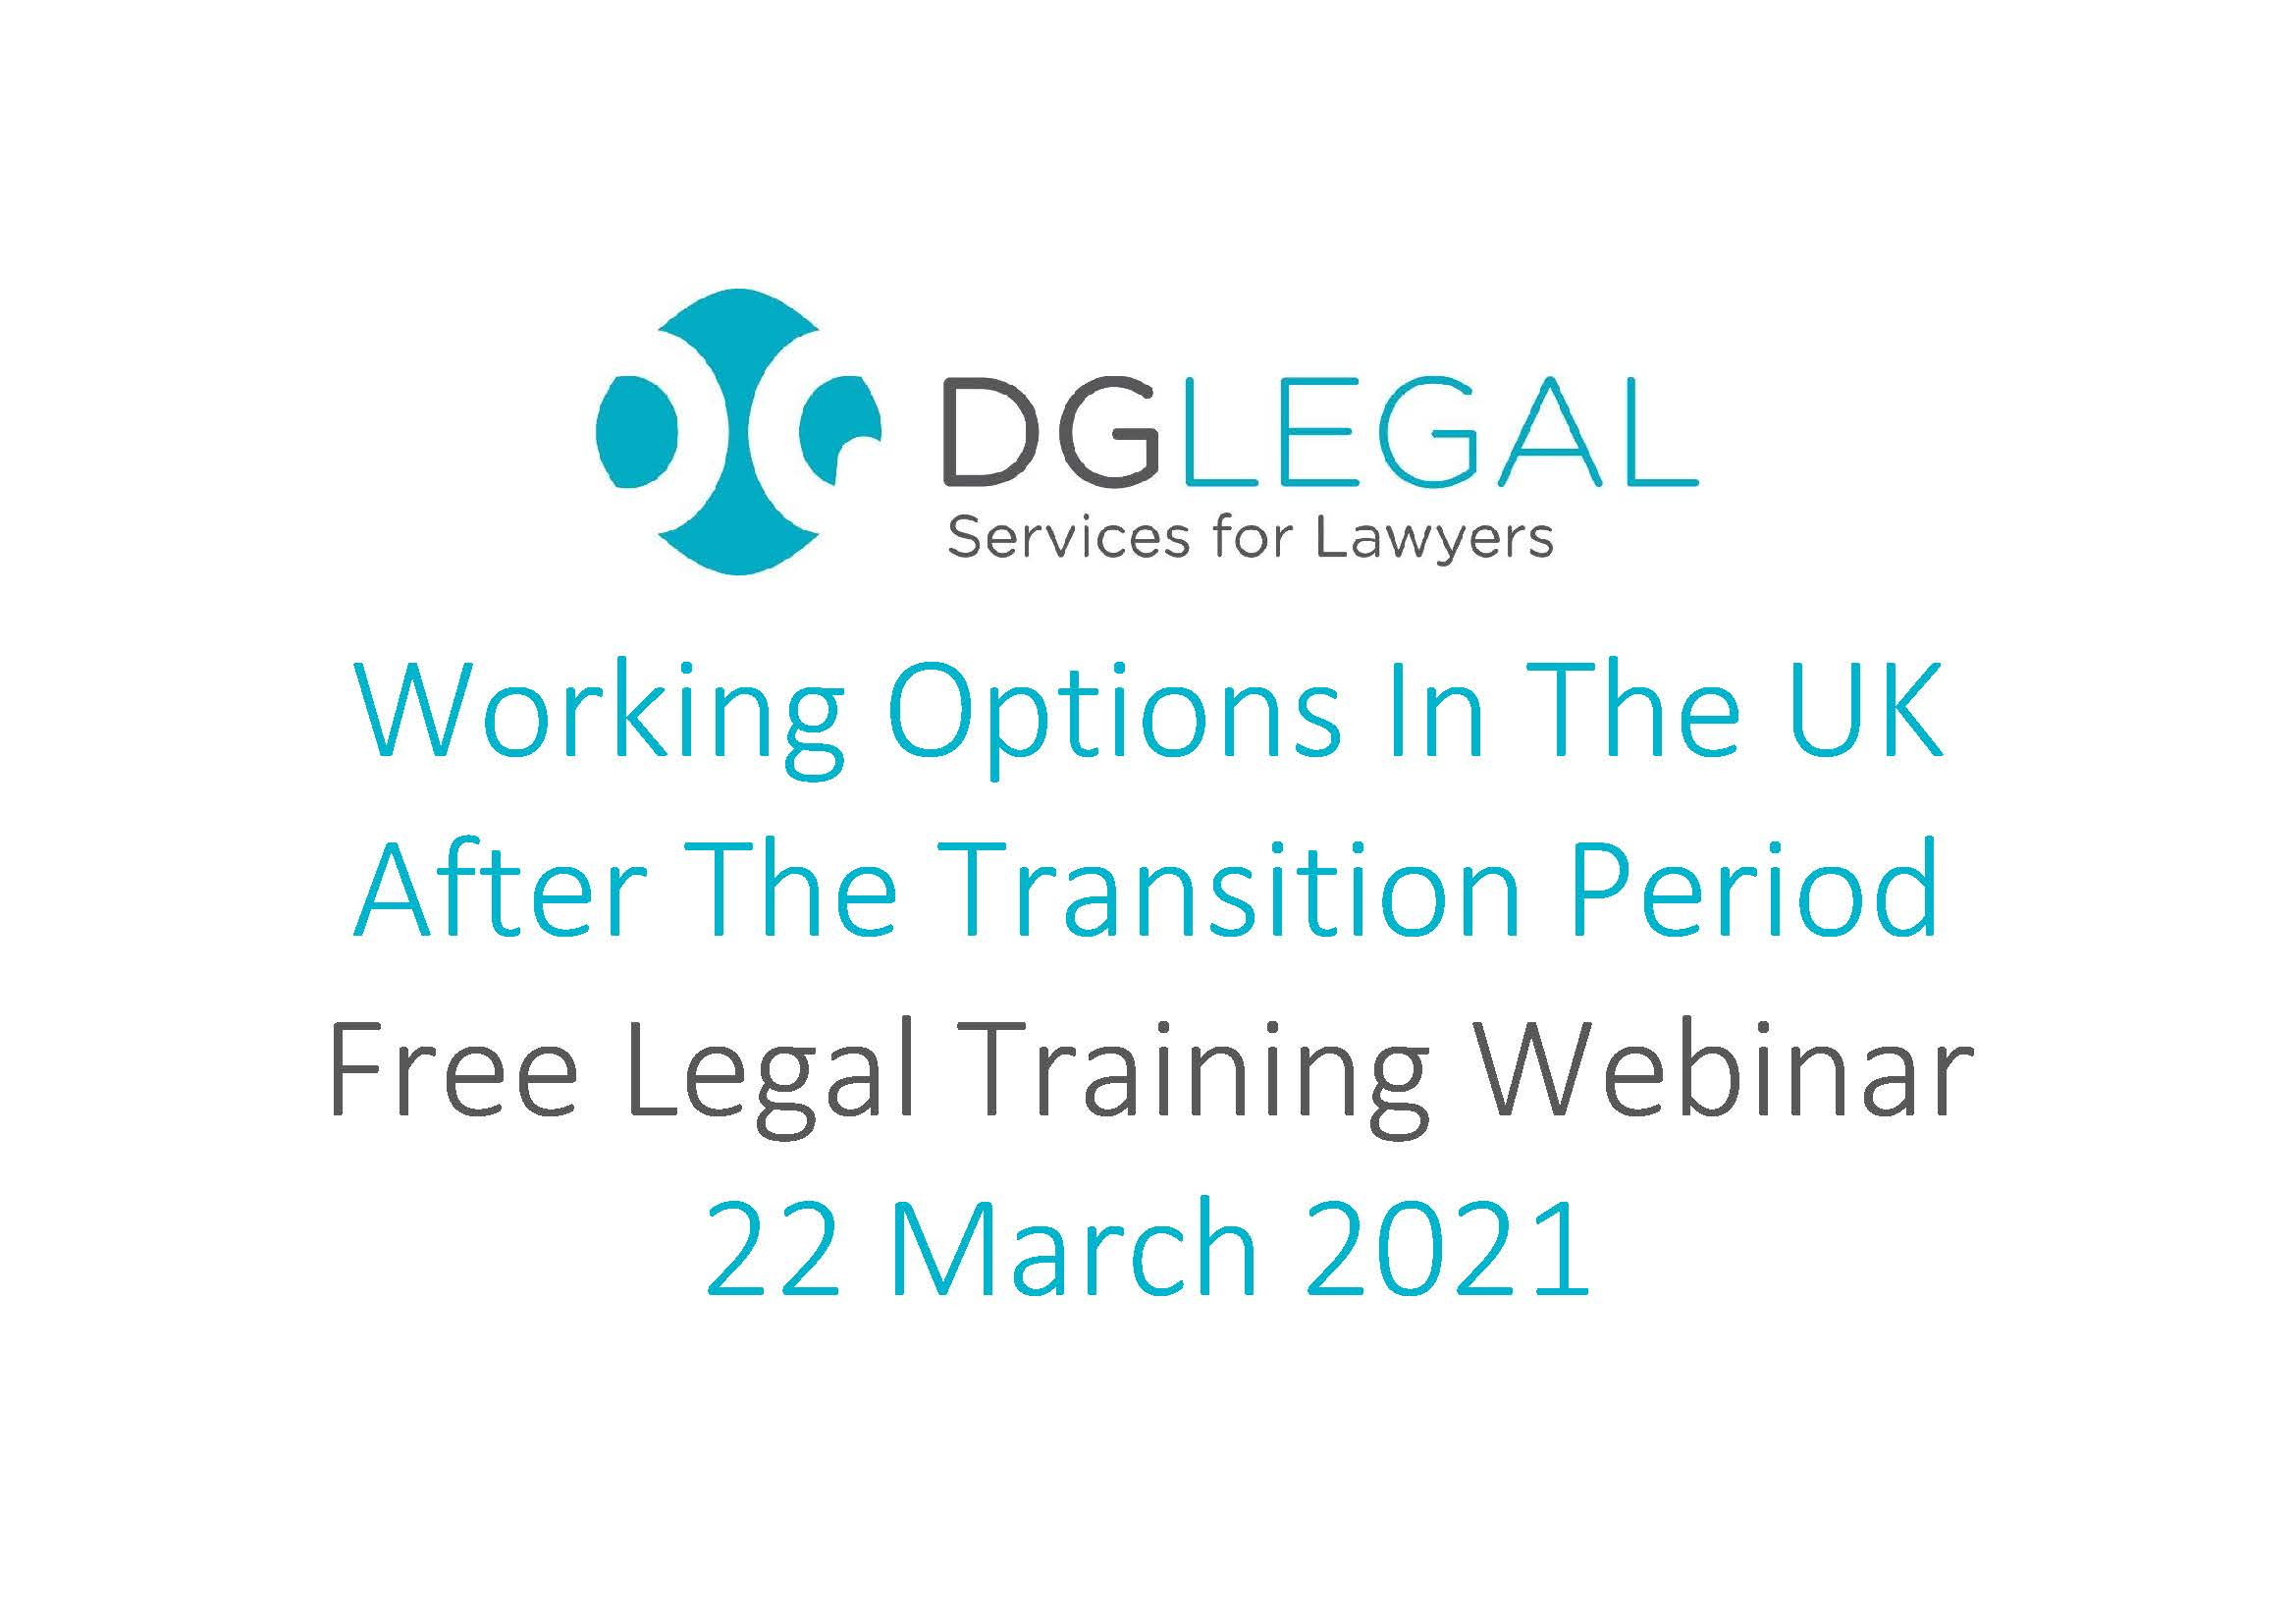 Working Options In The UK After The Transition Period